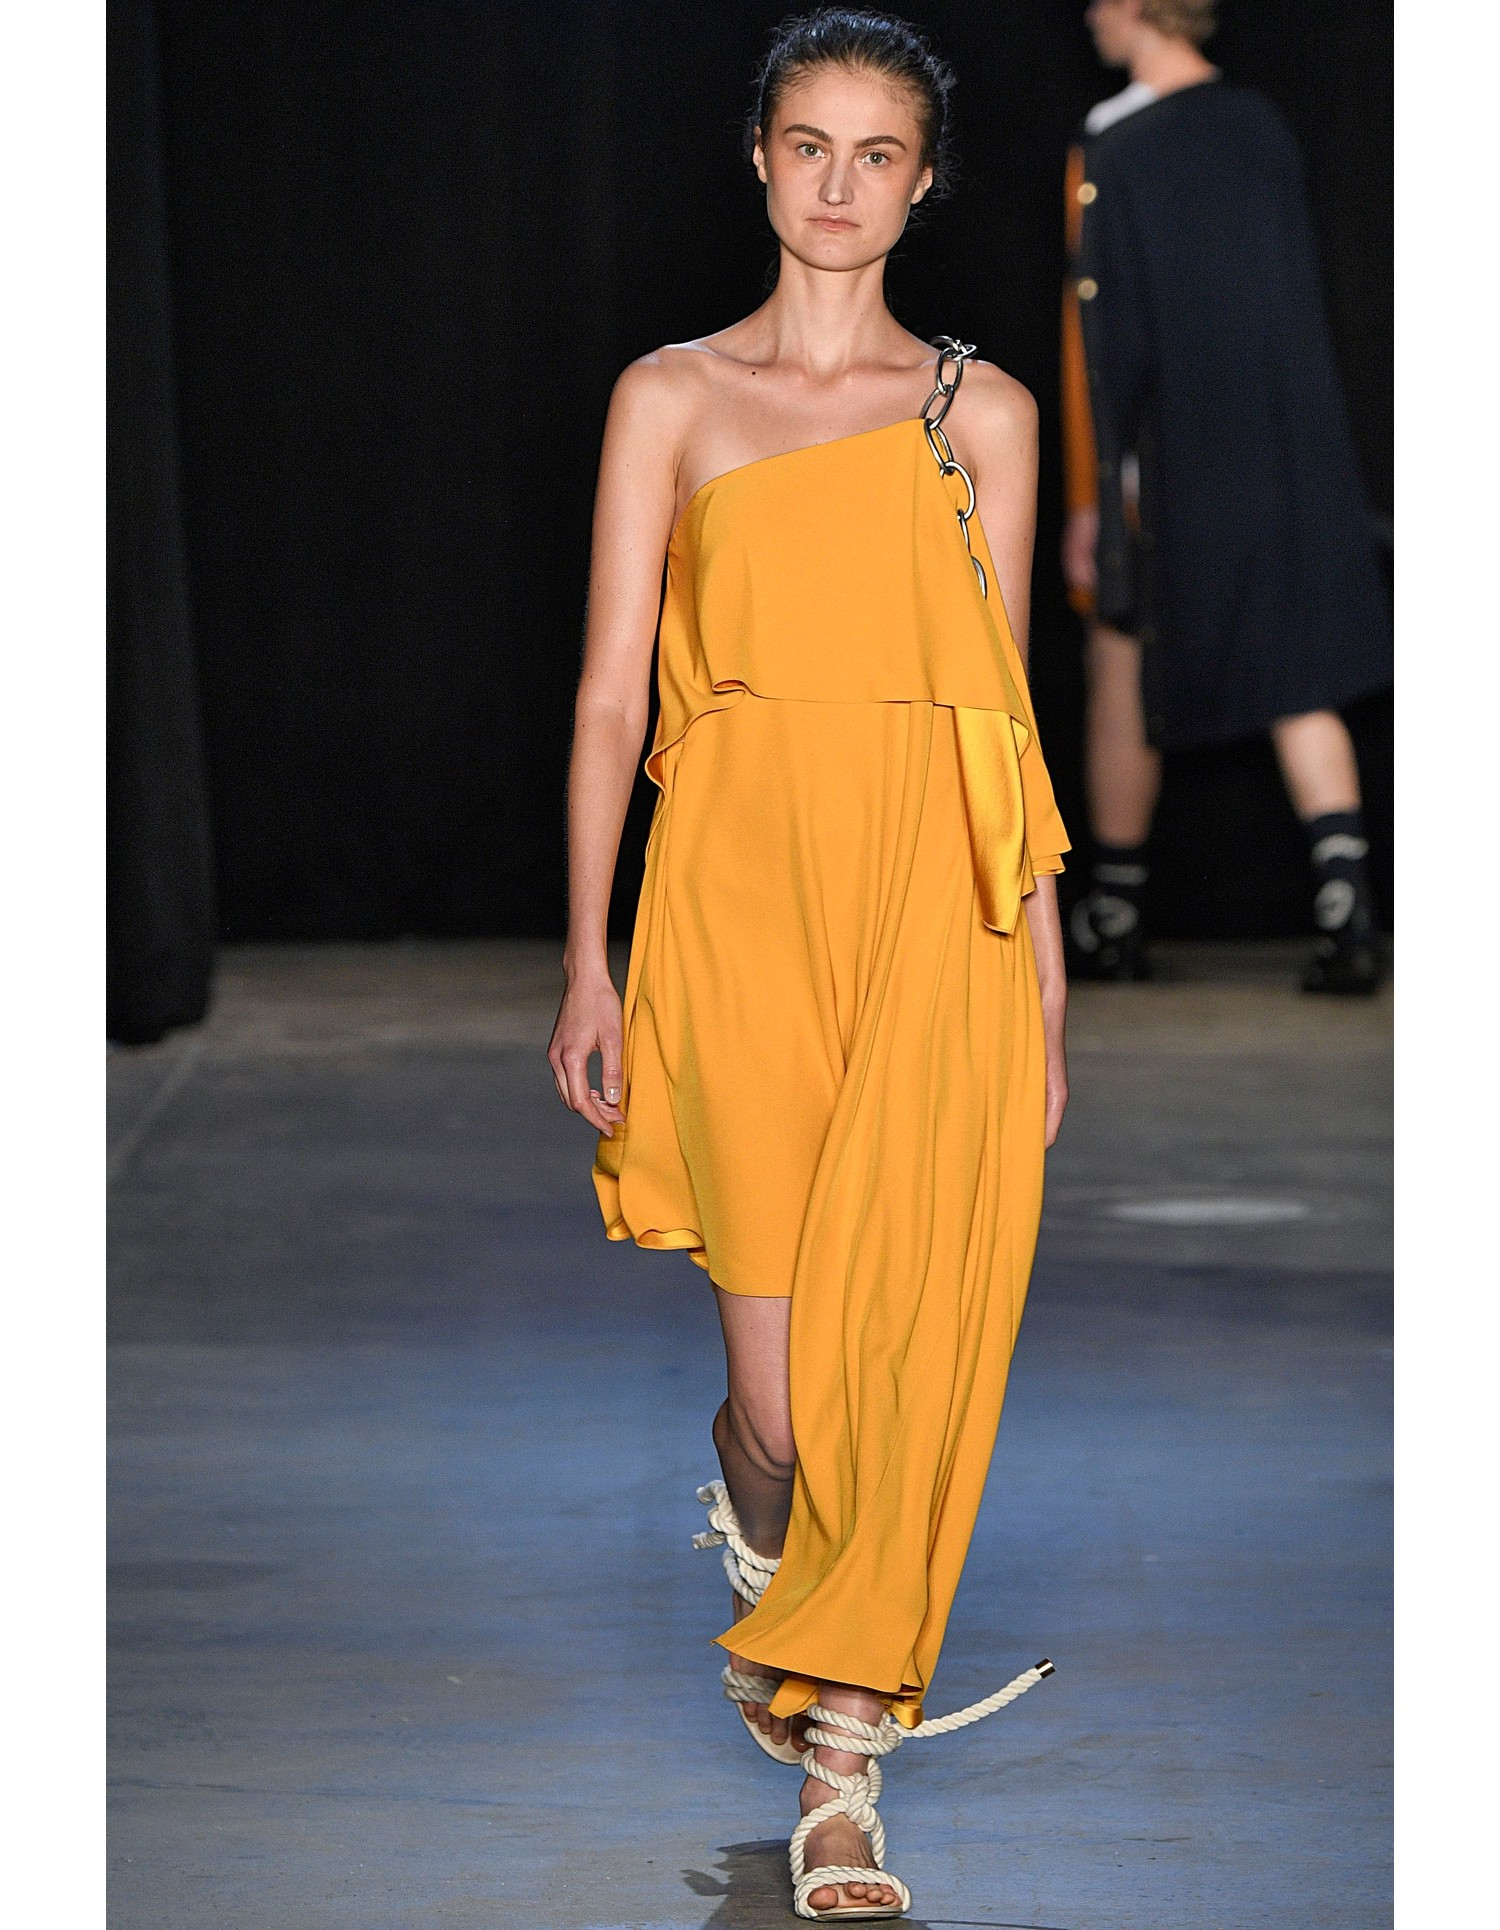 Shoulder Chain Draped Dress in Yellow on Runway Model